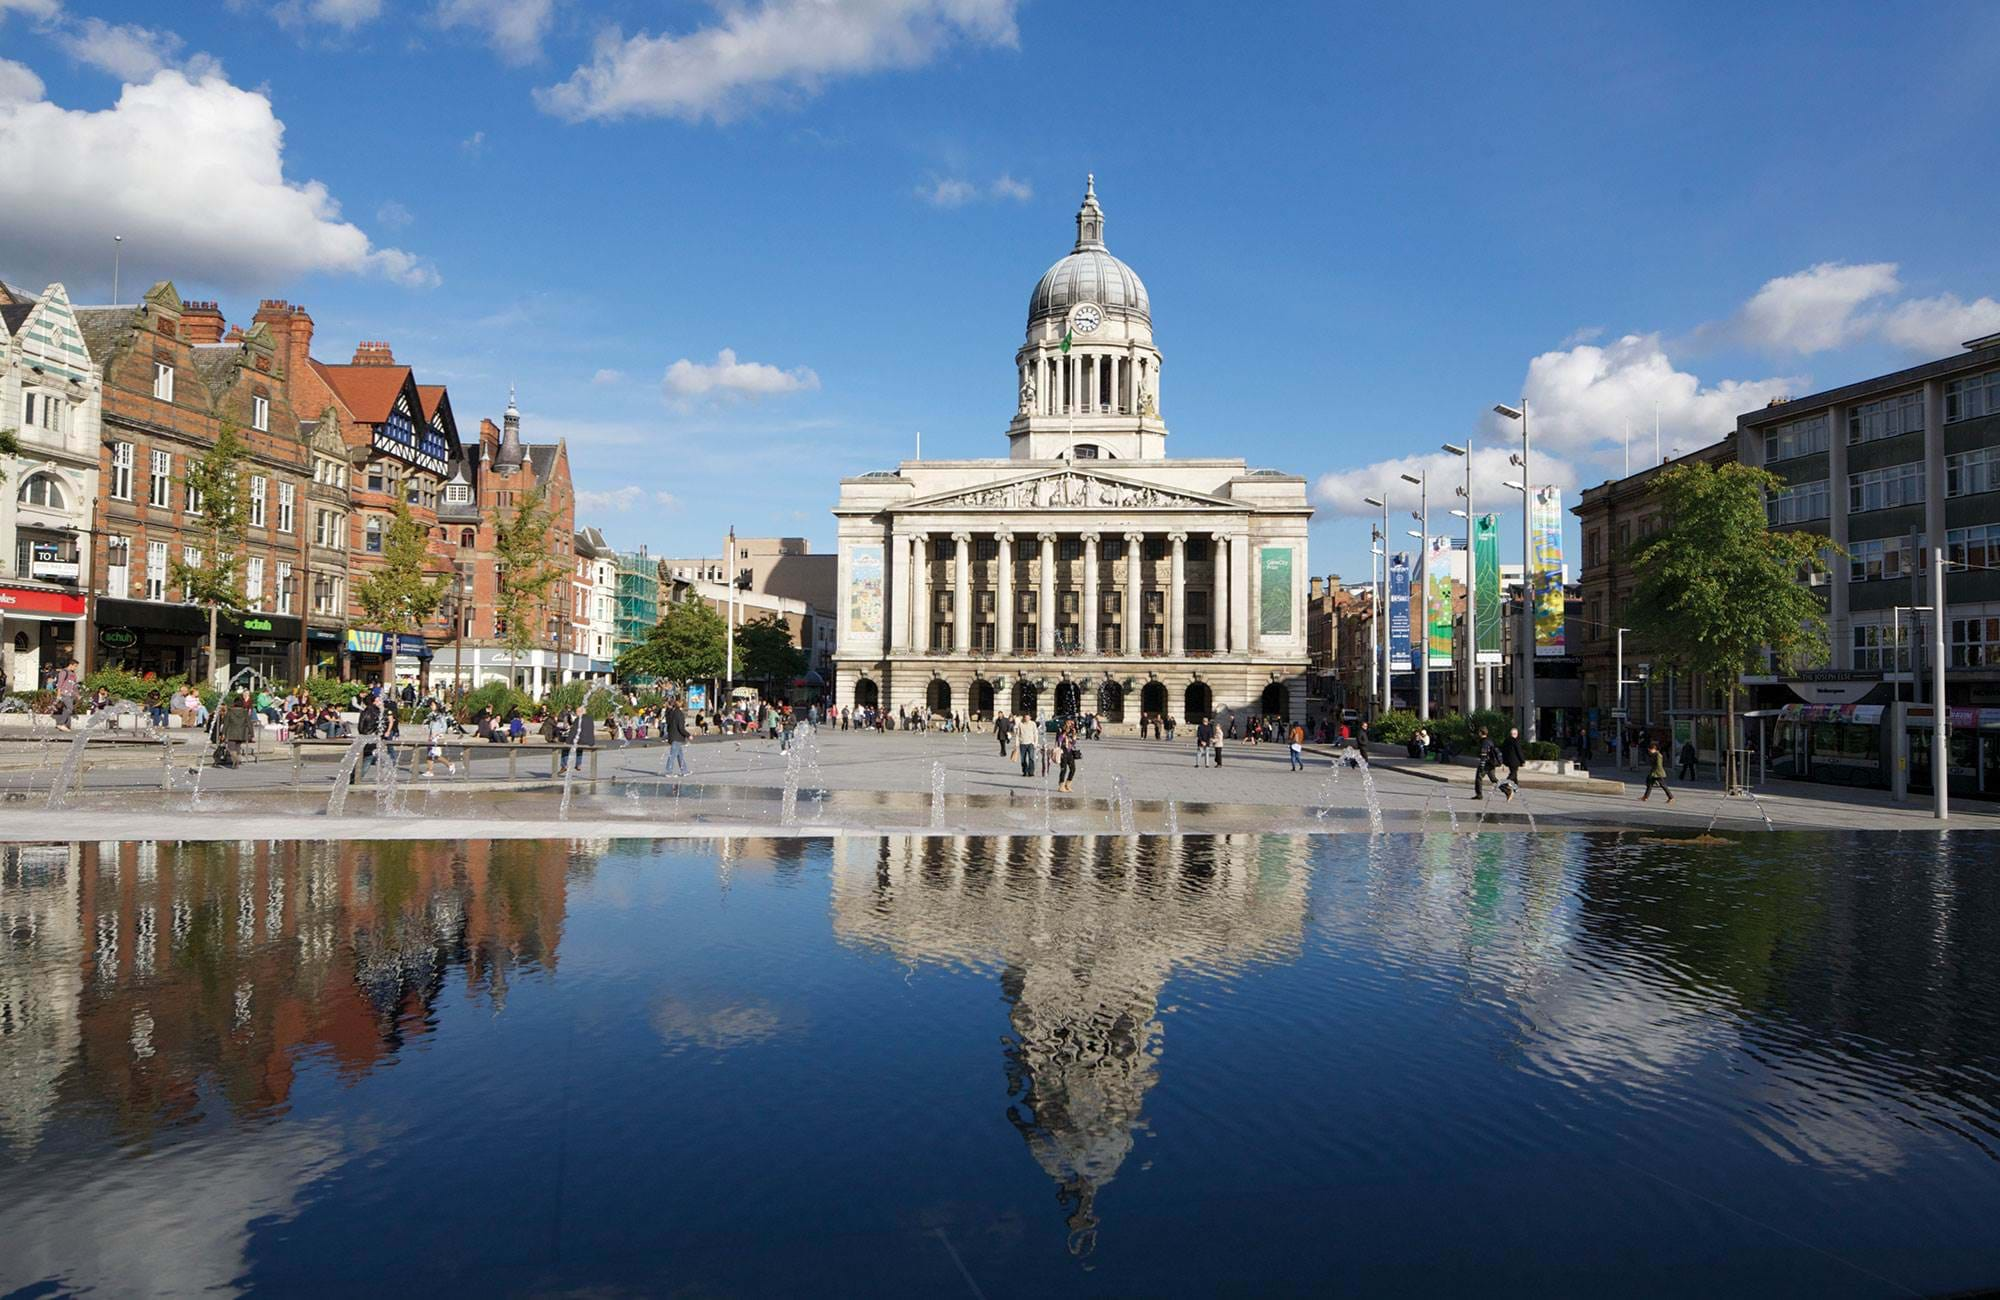 Nottingham Council House in Nottingham, England